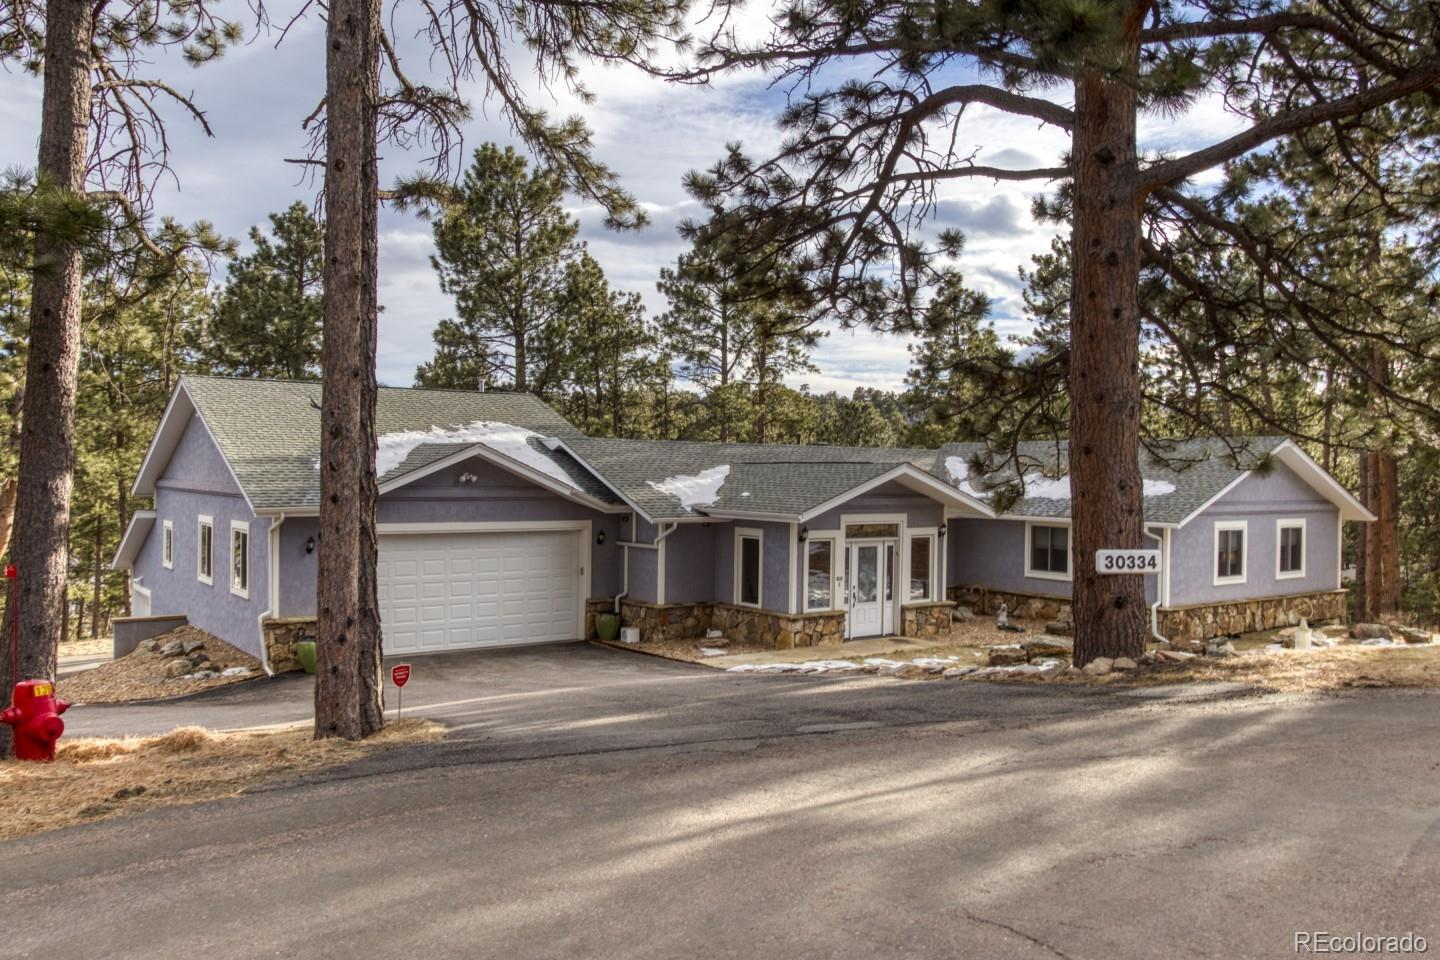 30334 Inverness Lane, Evergreen, CO 80439 - Evergreen, CO real estate listing